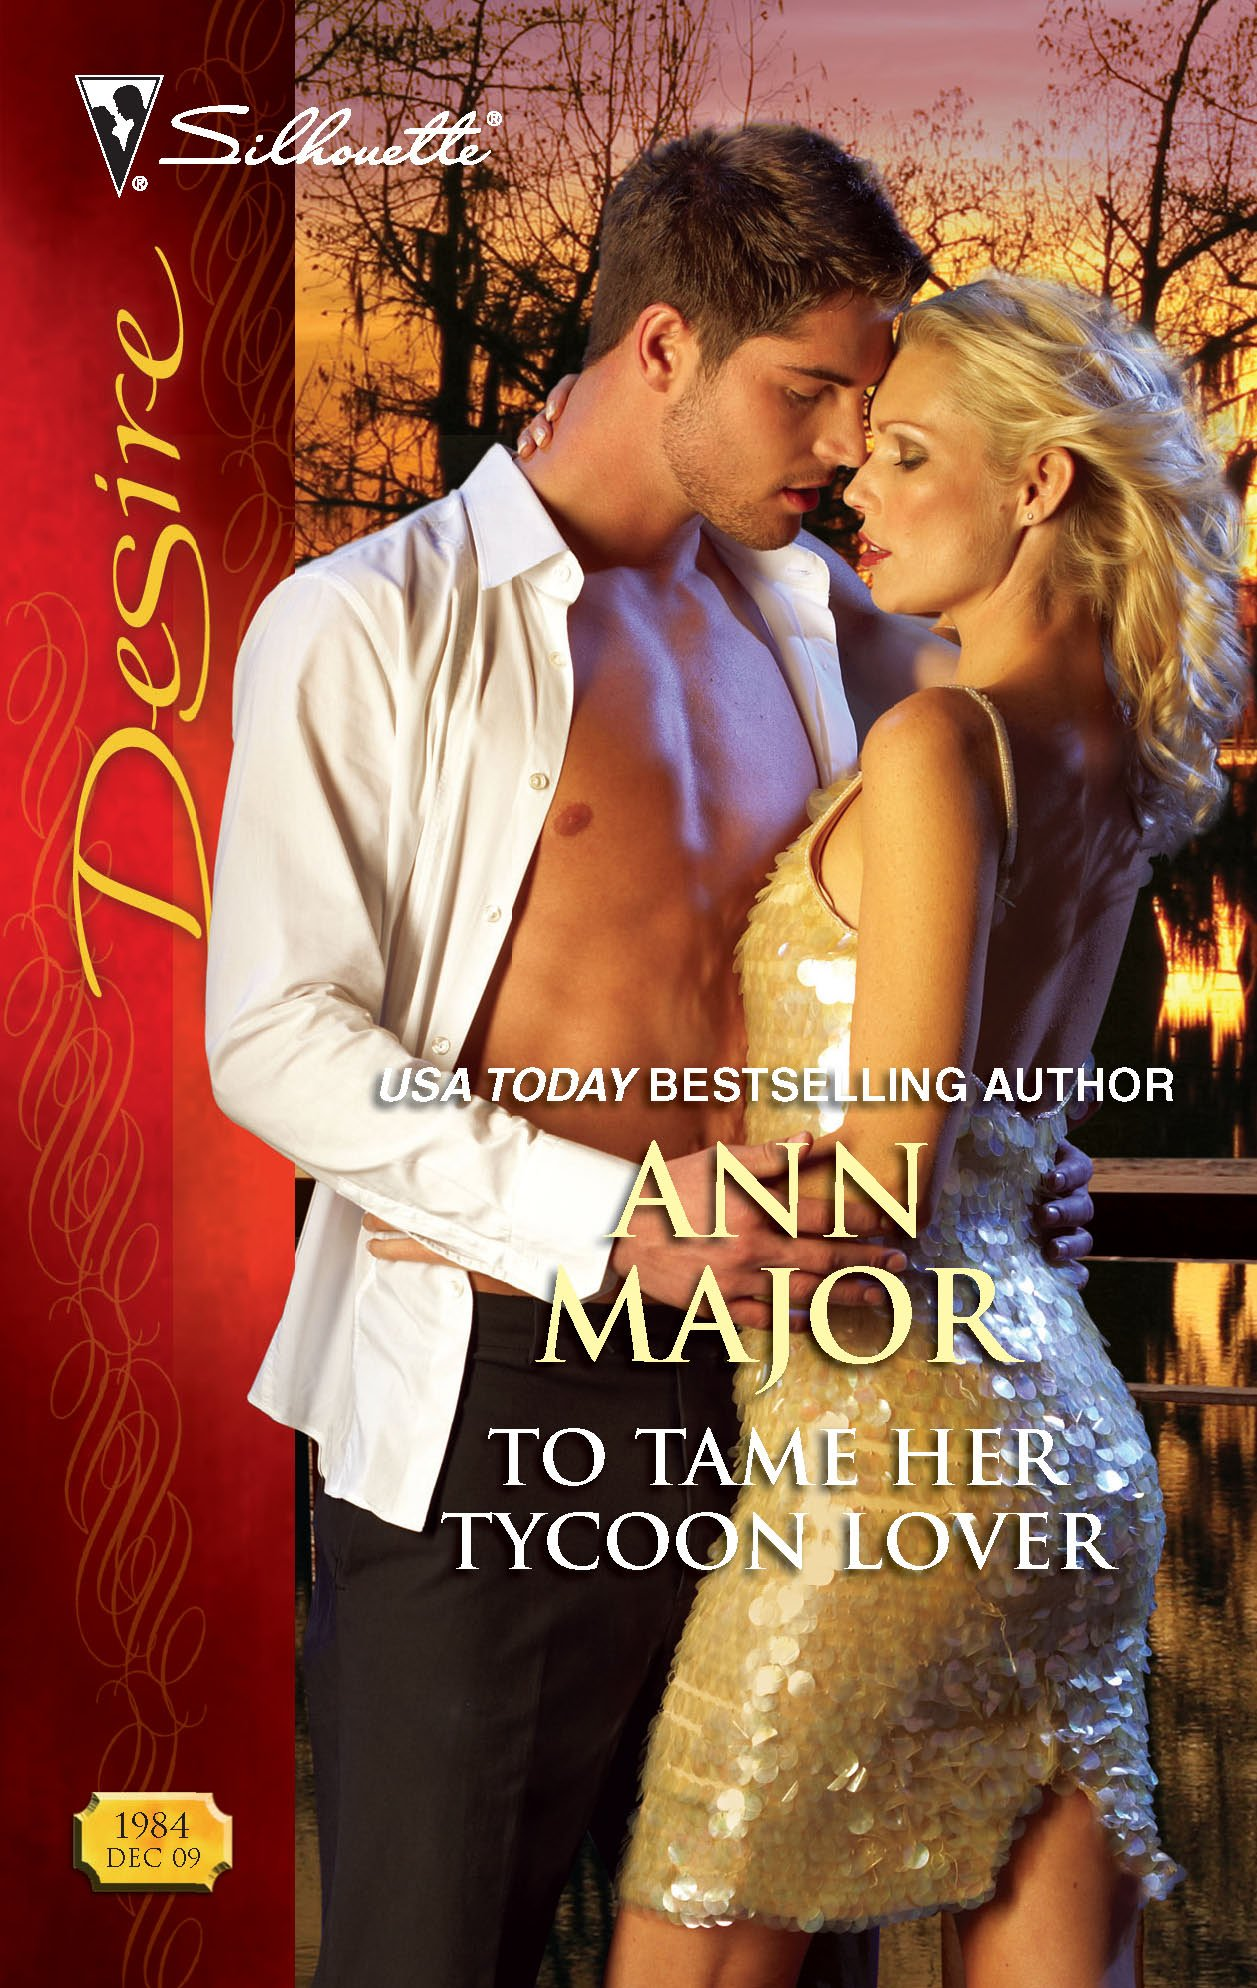 To Tame Her Tycoon Lover (Harlequin Desire): Ann Major